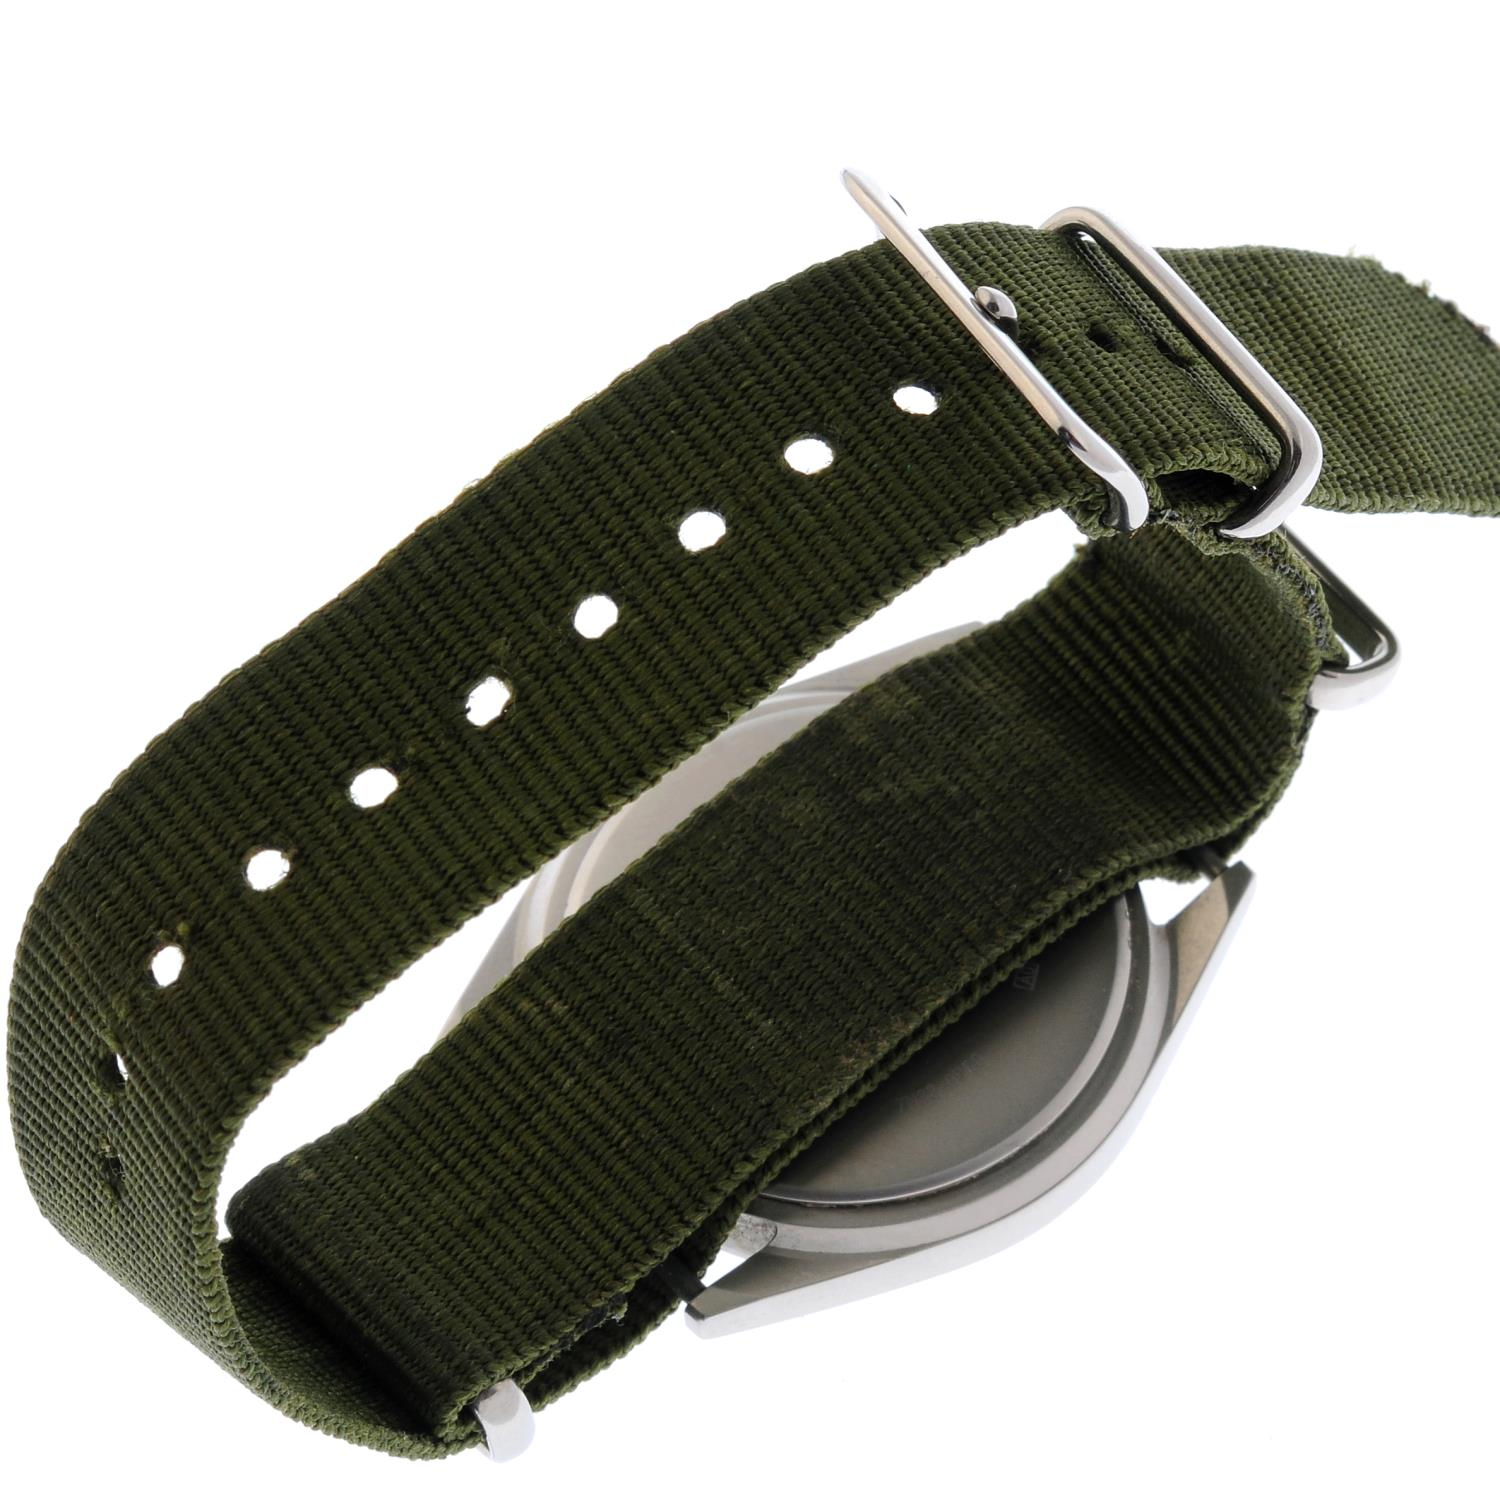 PULSAR - a military issue wrist watch,. - Image 2 of 4